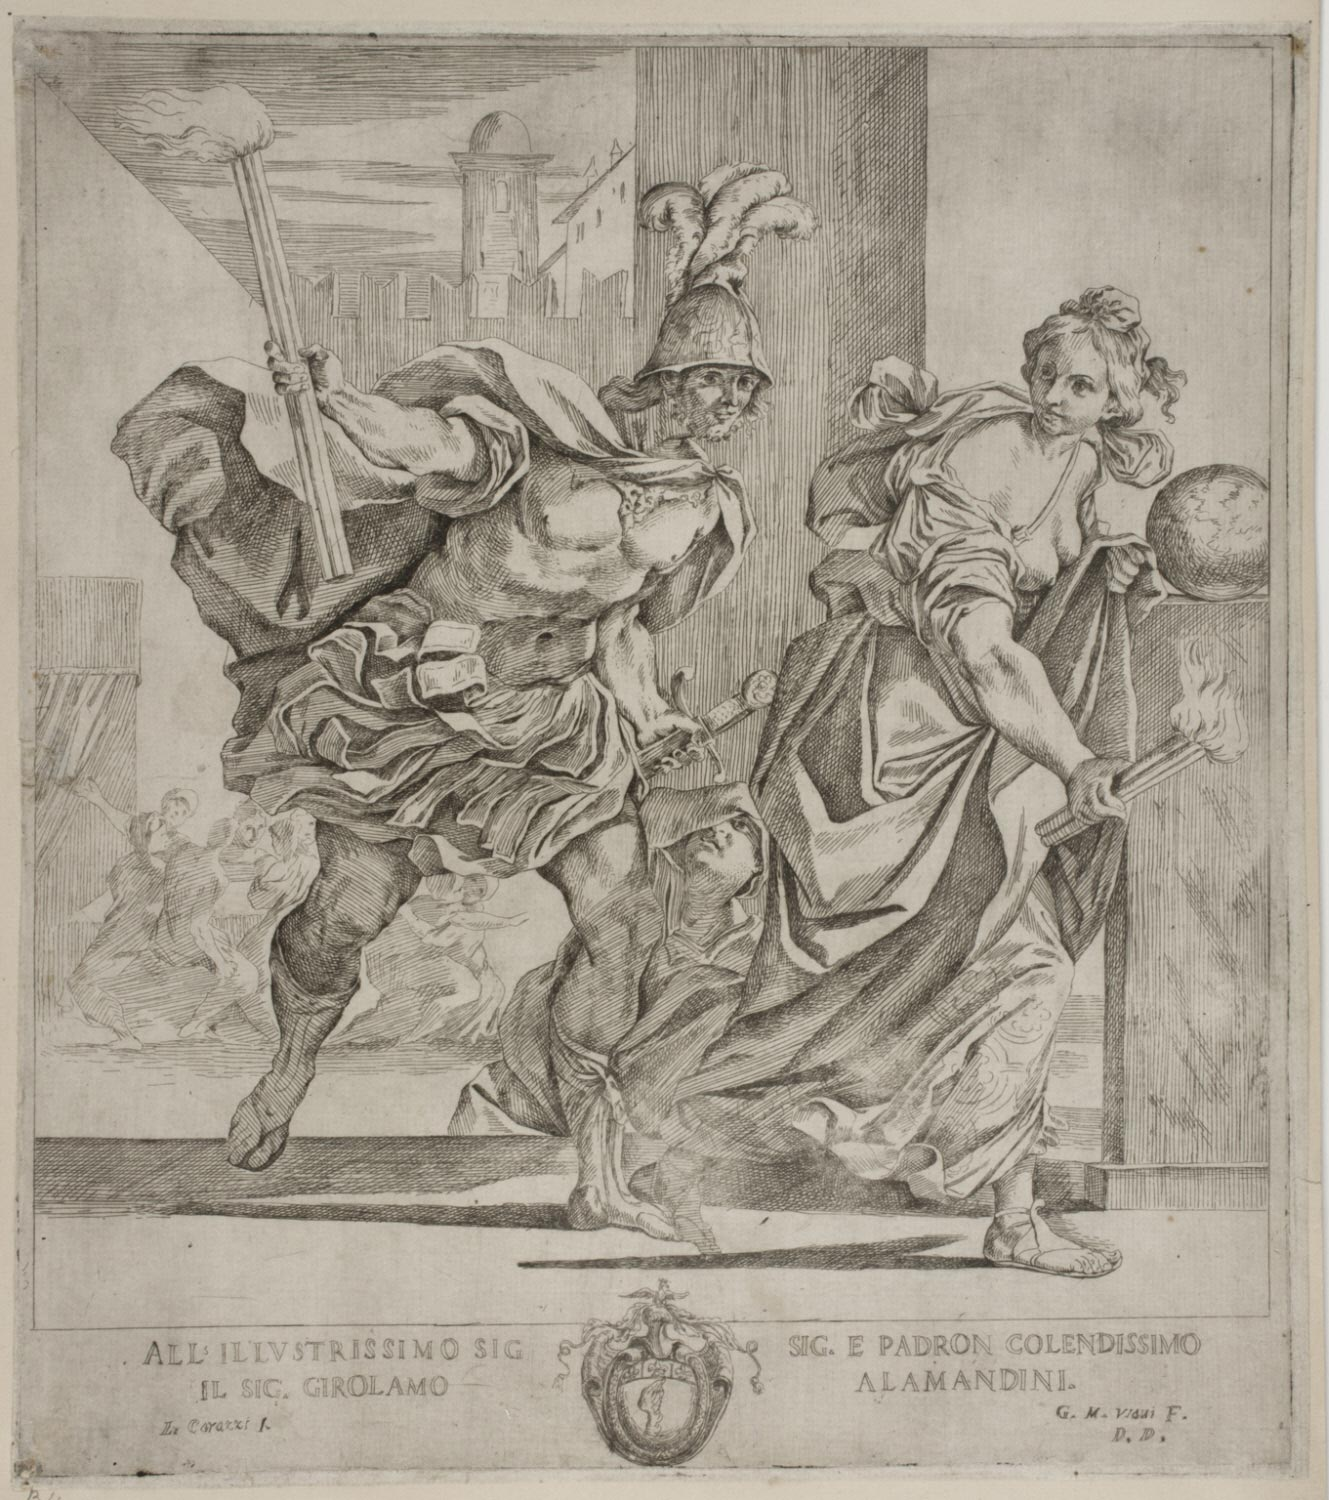 Alexander the Great and Thaïs Putting Persepolis to the Torch